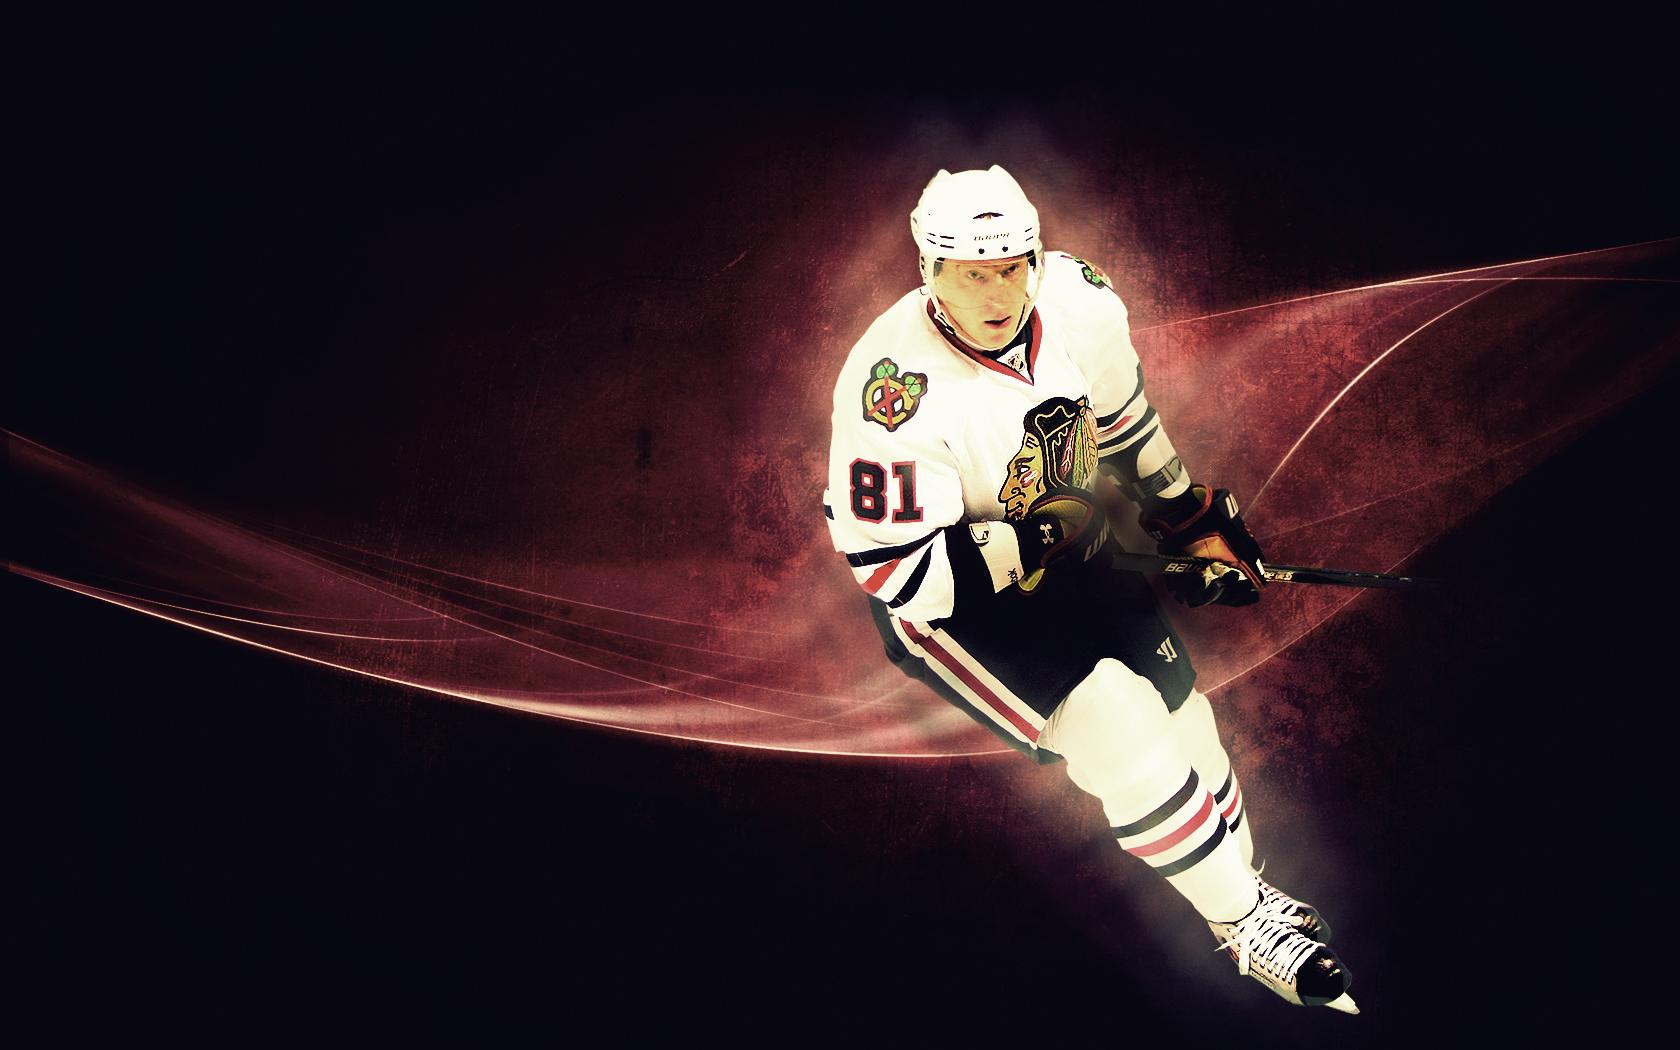 Hockey Marian Hossa Chicago Blackhawks wallpapers